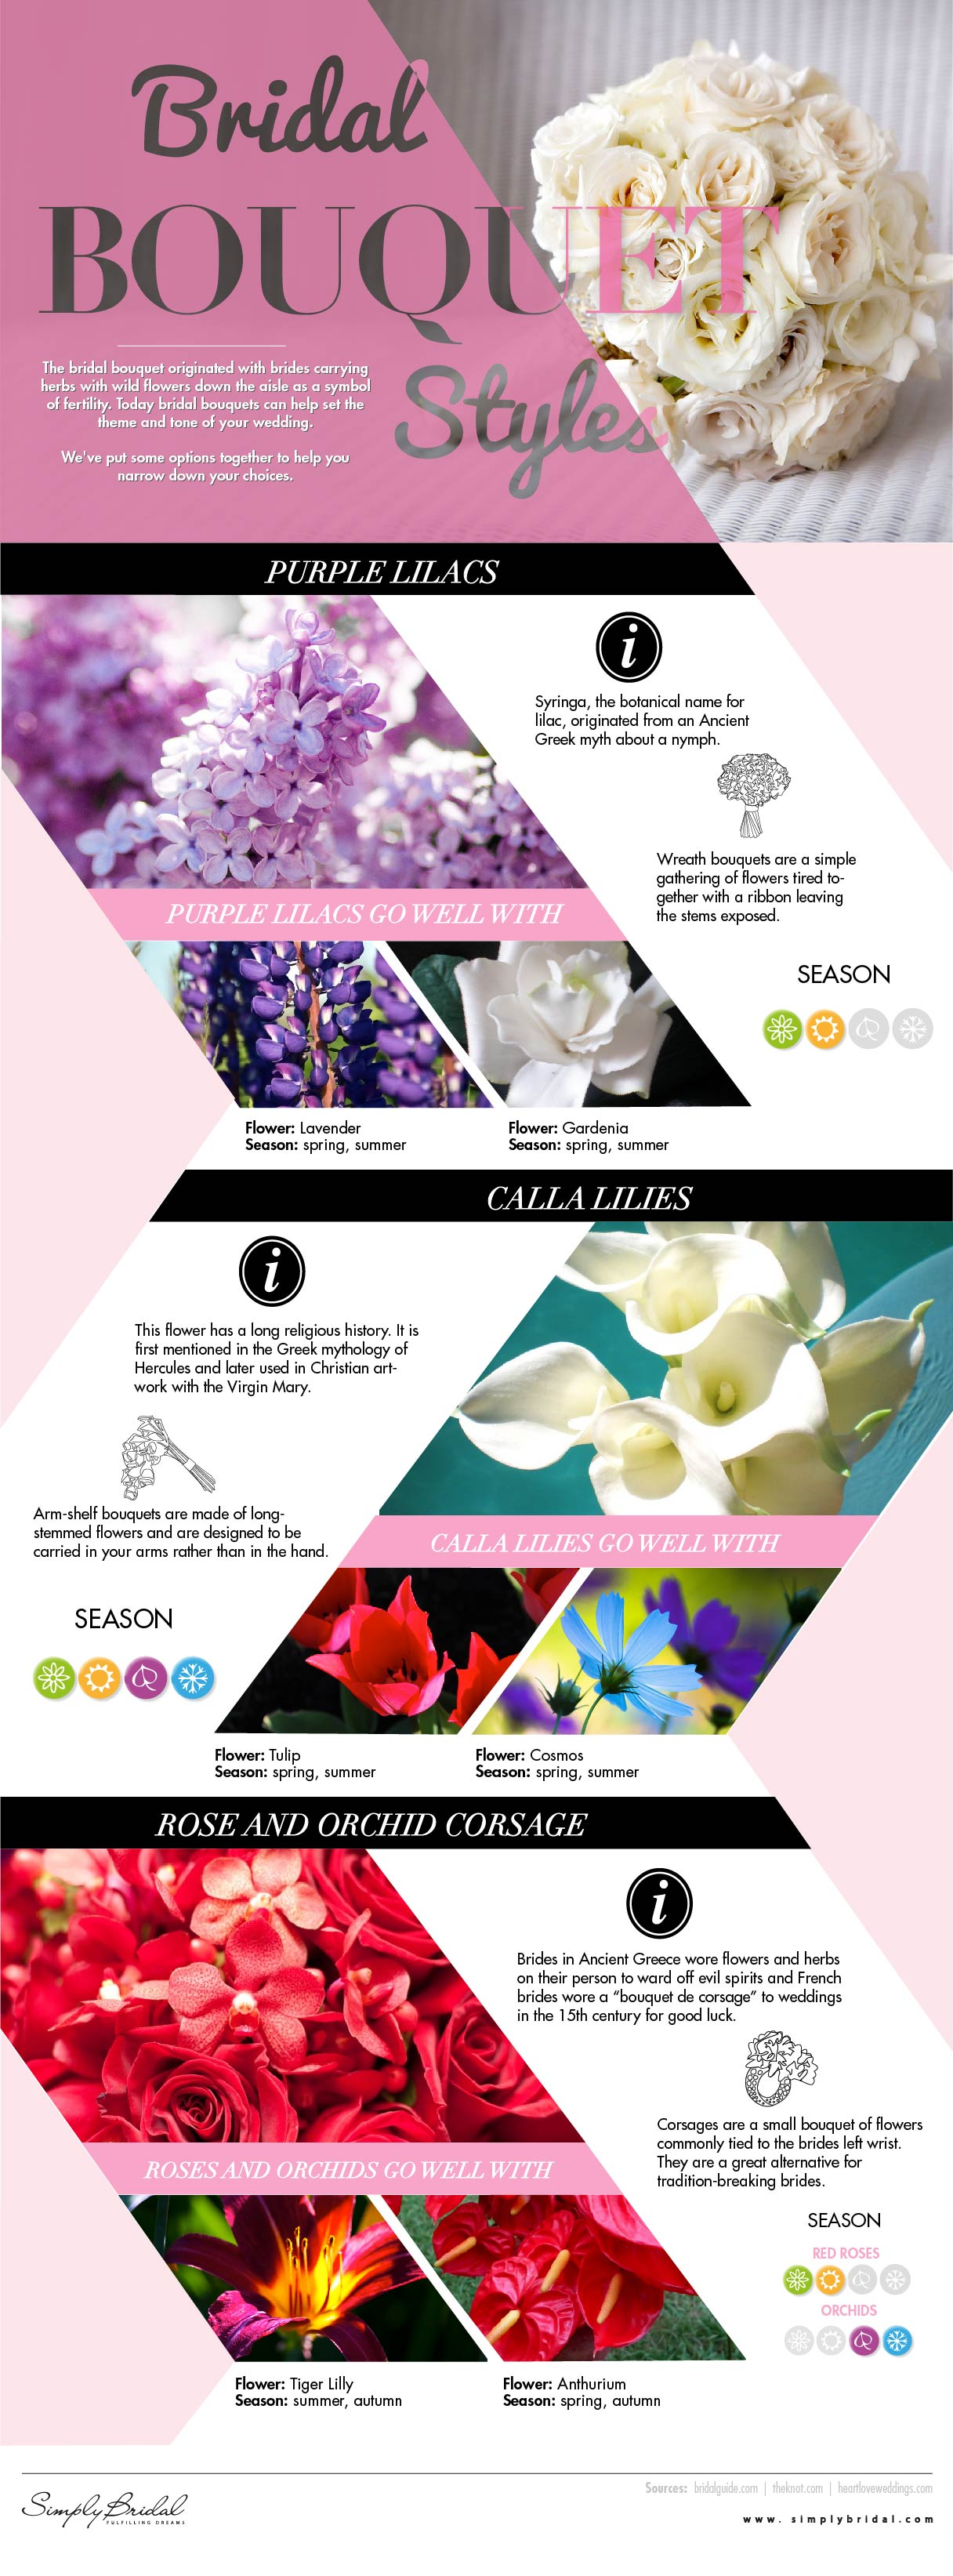 Bridal Bouquet Styles Infographic